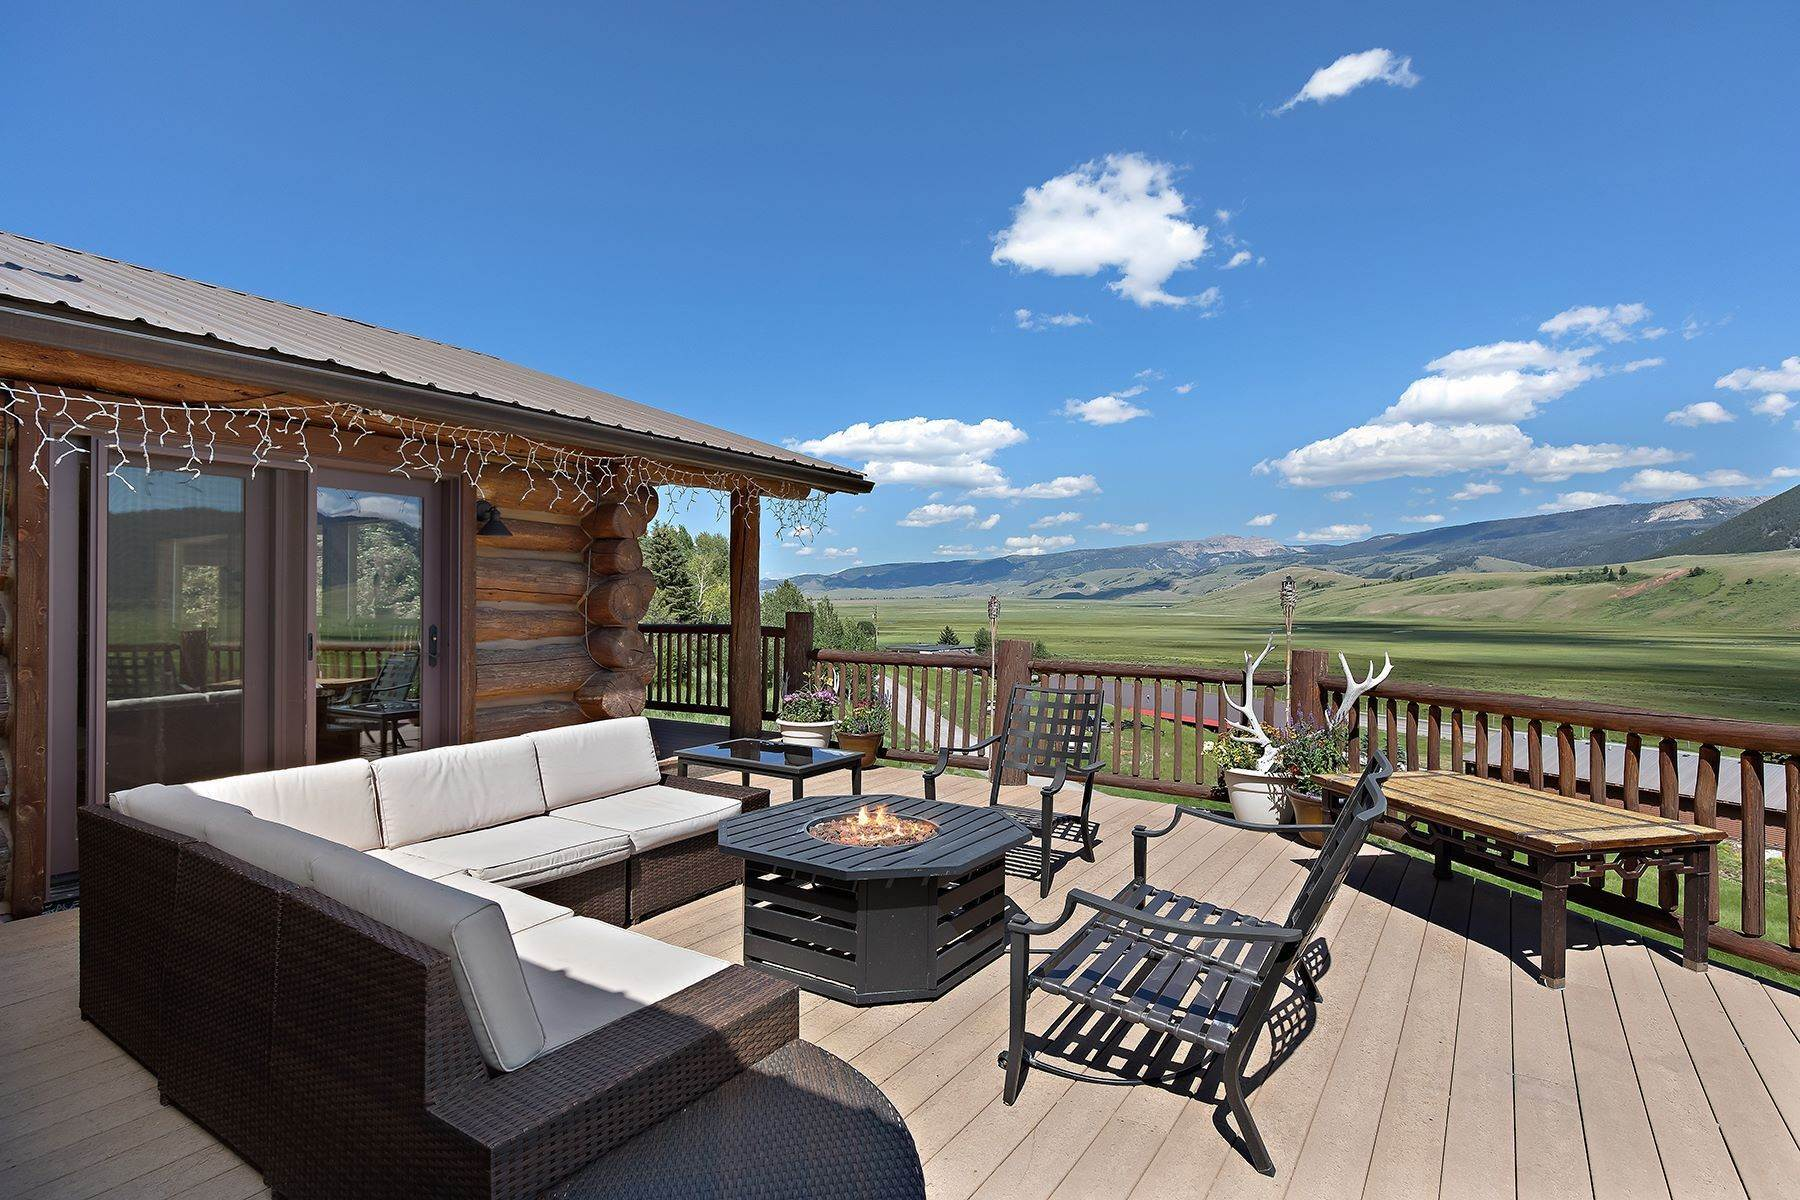 Single Family Homes for Sale at 1875 N Hwy 89 Jackson, Wyoming 83001 United States